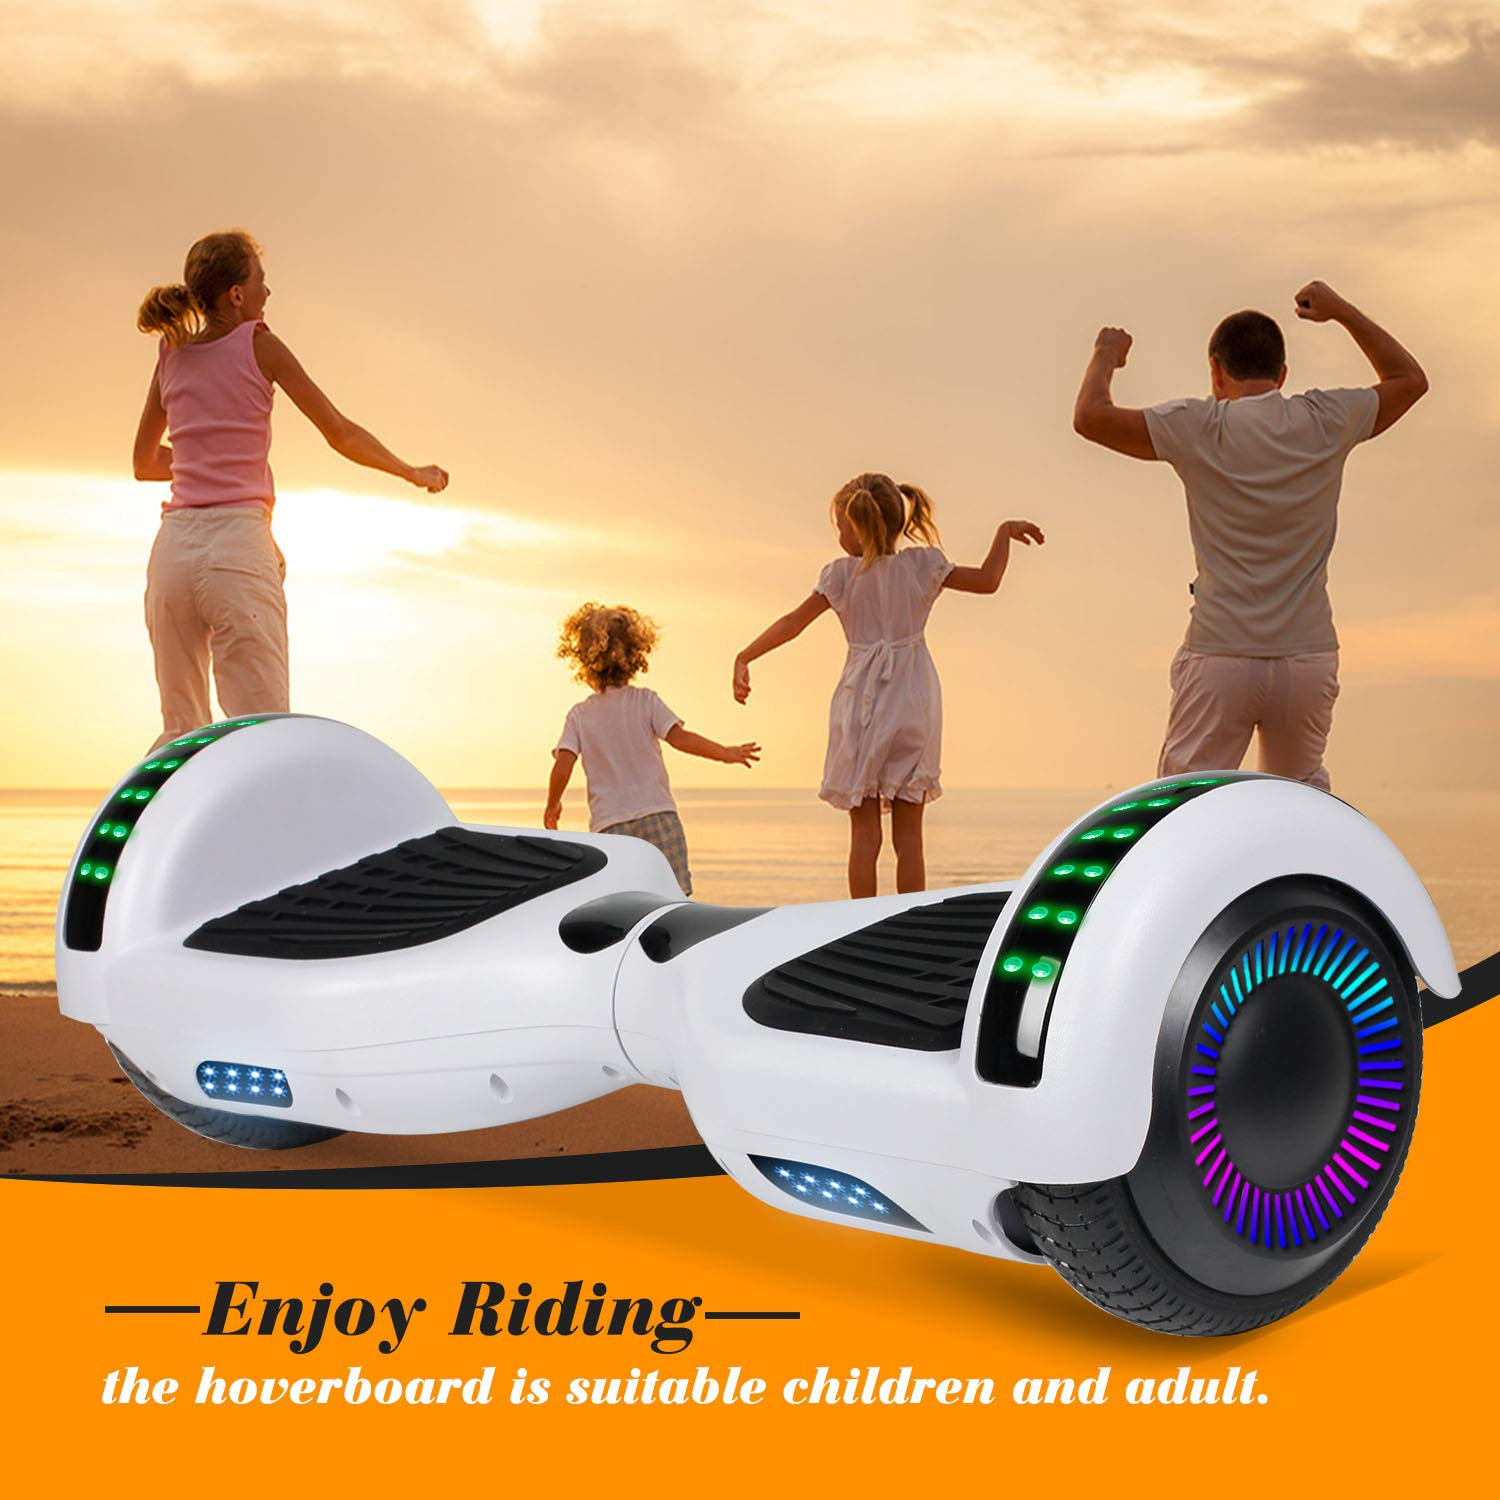 """SWEETBUY Hoverboard UL 2272 Certified 6.5"""" Two-Wheel Bluetooth Self Balancing Electric Scooter with LED Light Flash Lights Wheels White(Free Carry Bag) by SWEETBUY (Image #6)"""